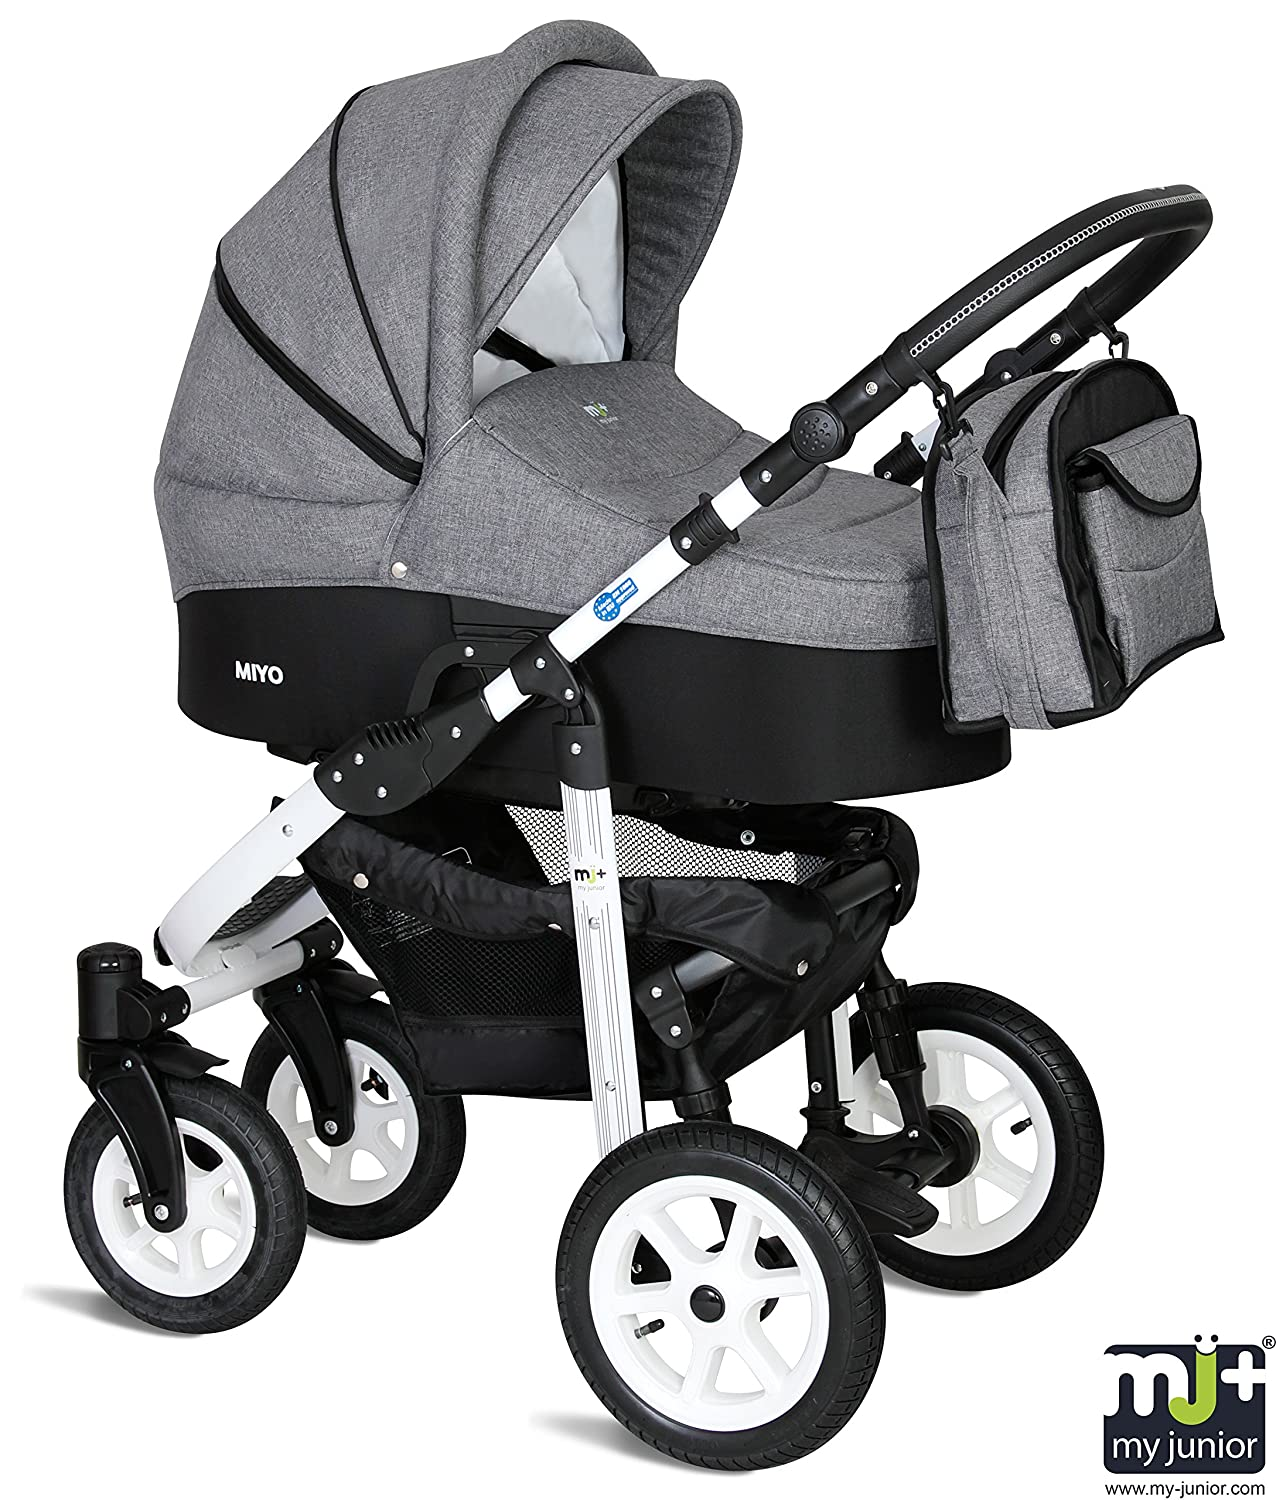 My Junior Miyo Ebay Sannes Testwelt My Junior Kinderwagen Teil 1